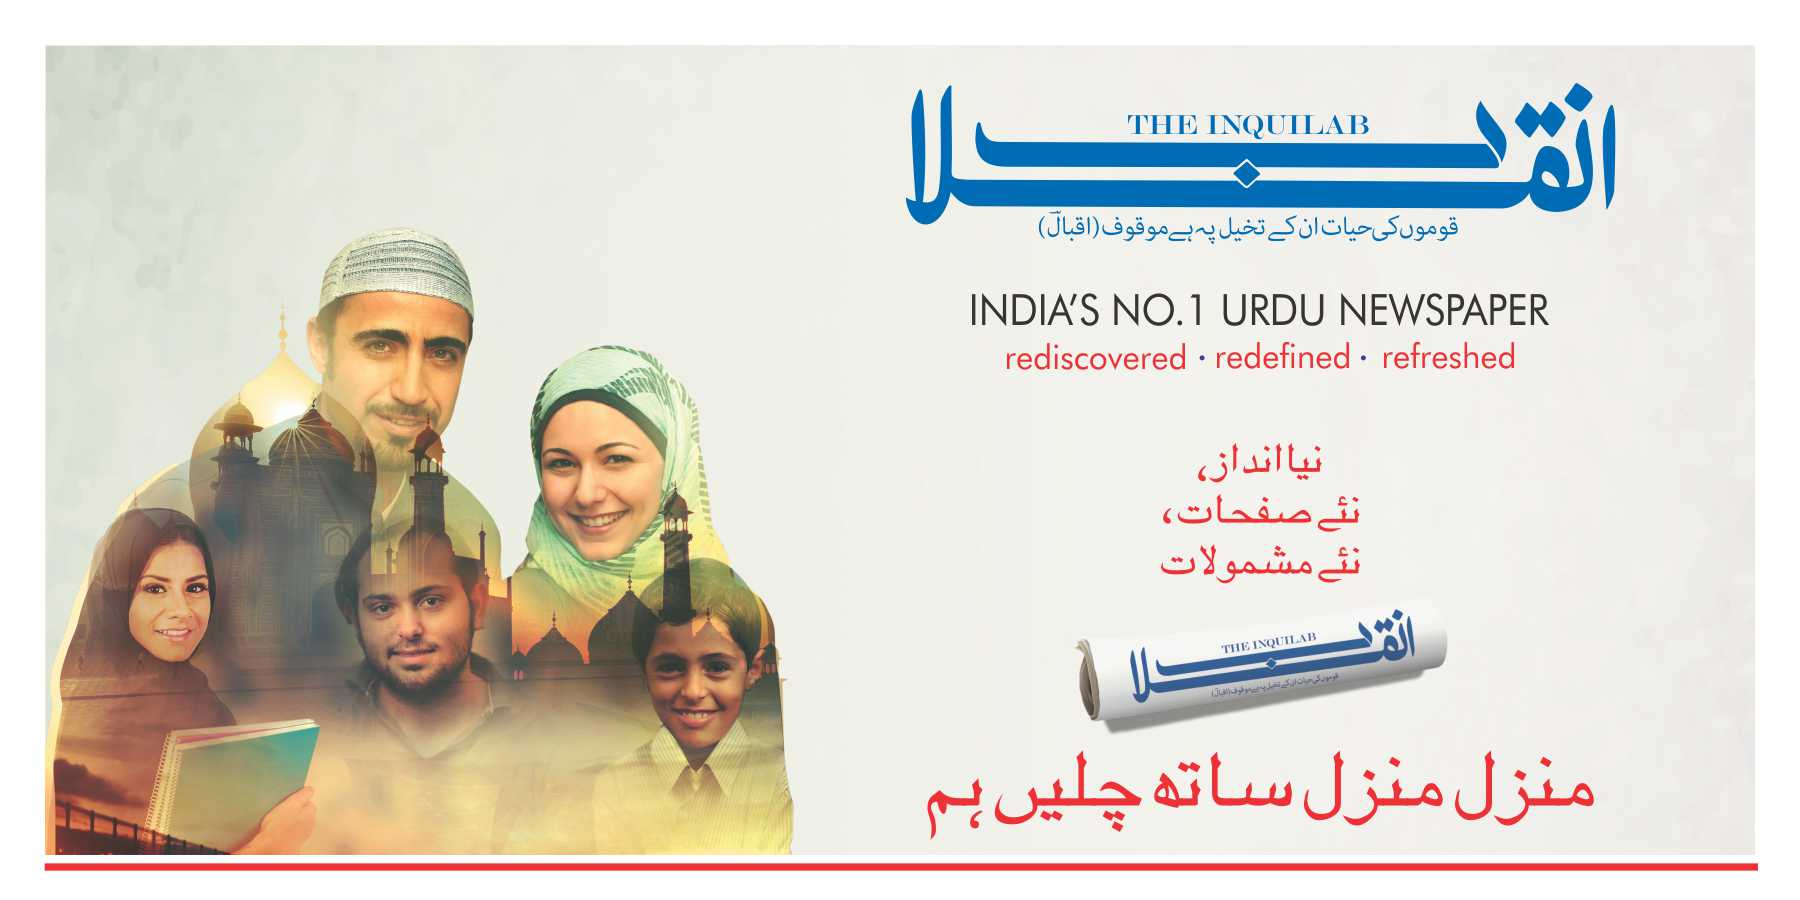 Re-launch of The Inquilab